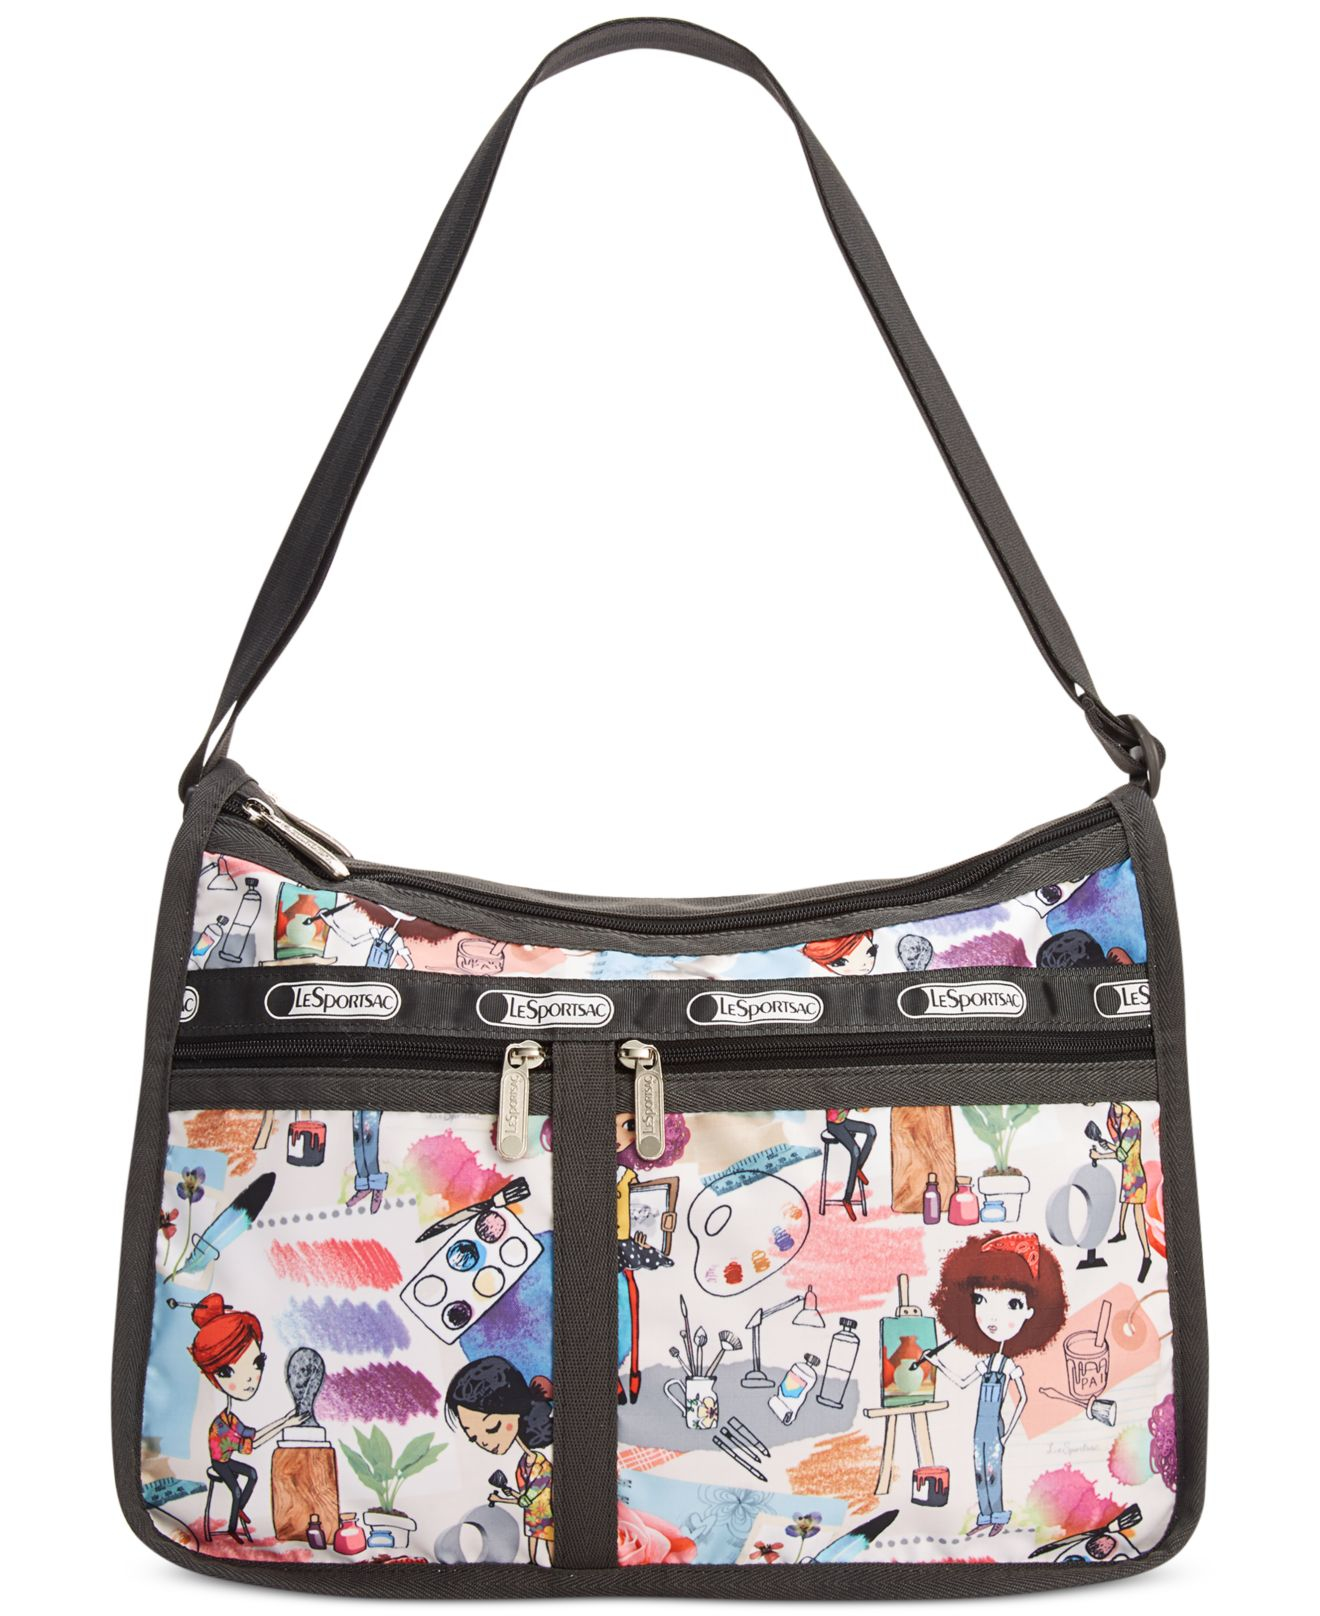 430d1a657e Lyst - LeSportsac Deluxe Everyday Bag